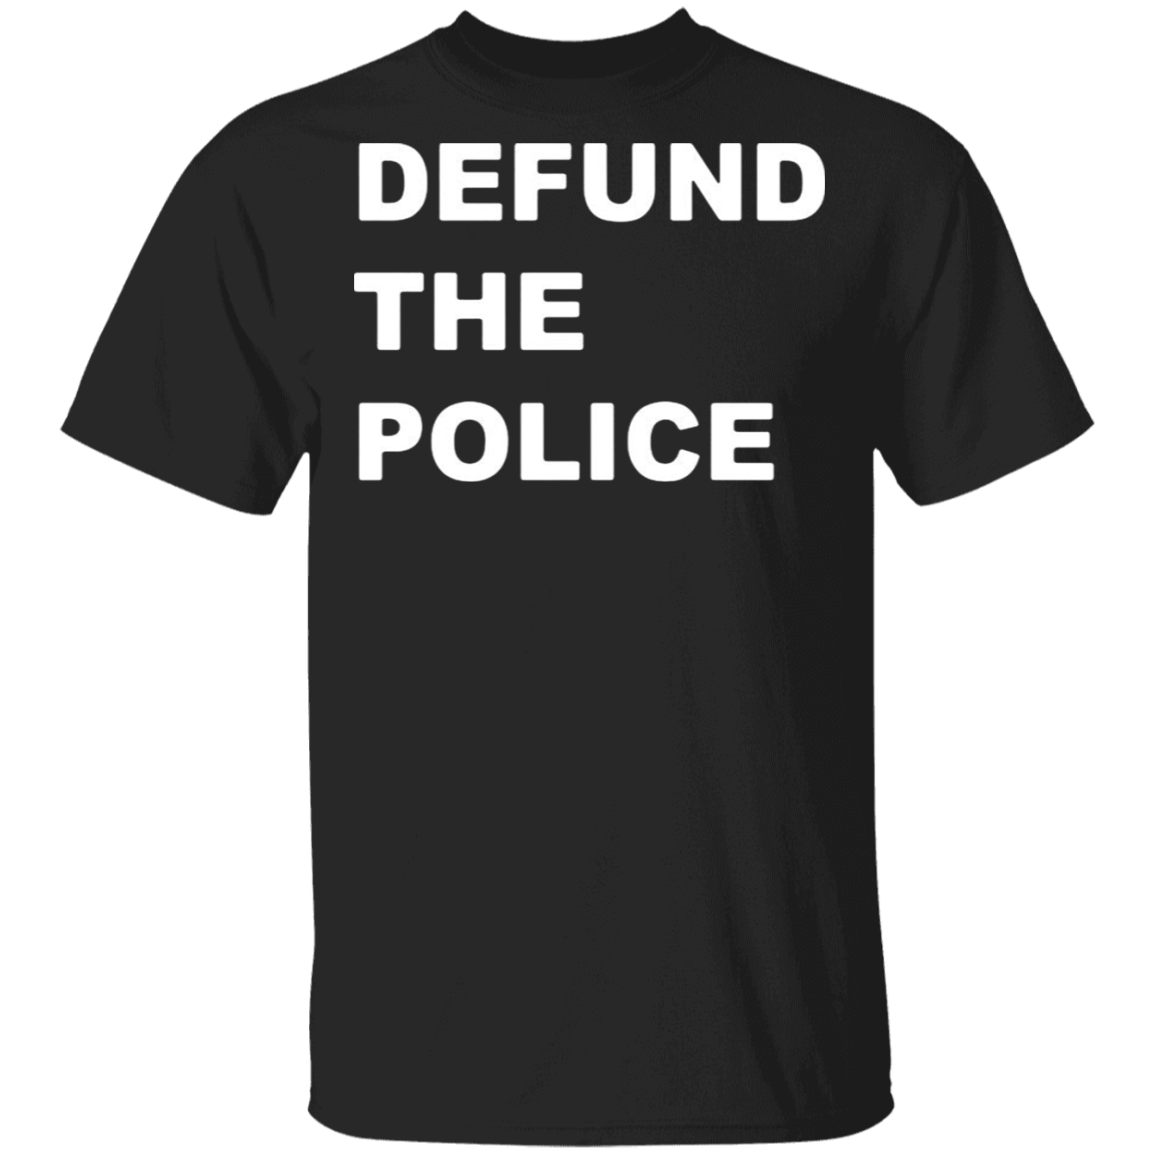 John Oliver Defund The Police T-Shirt Defund The NYPD T-Shirt Protest Blm